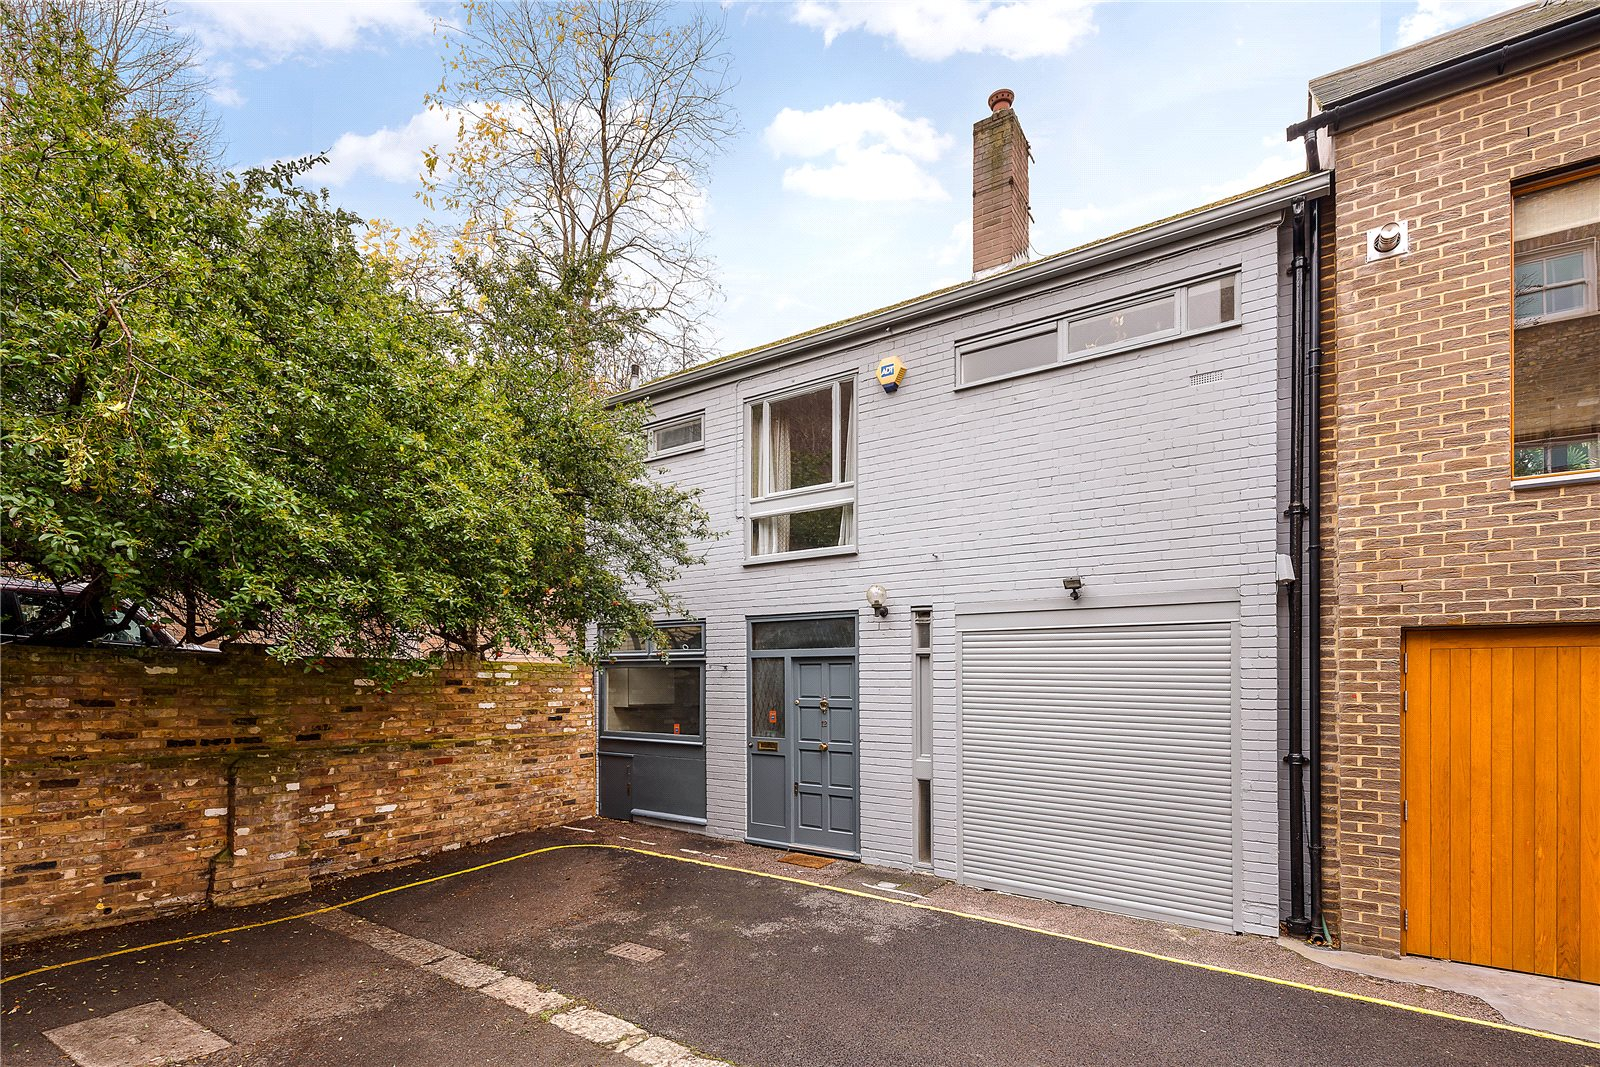 Additional photo for property listing at Boyne Terrace Mews, Holland Park, London, W11 Holland Park, London, England